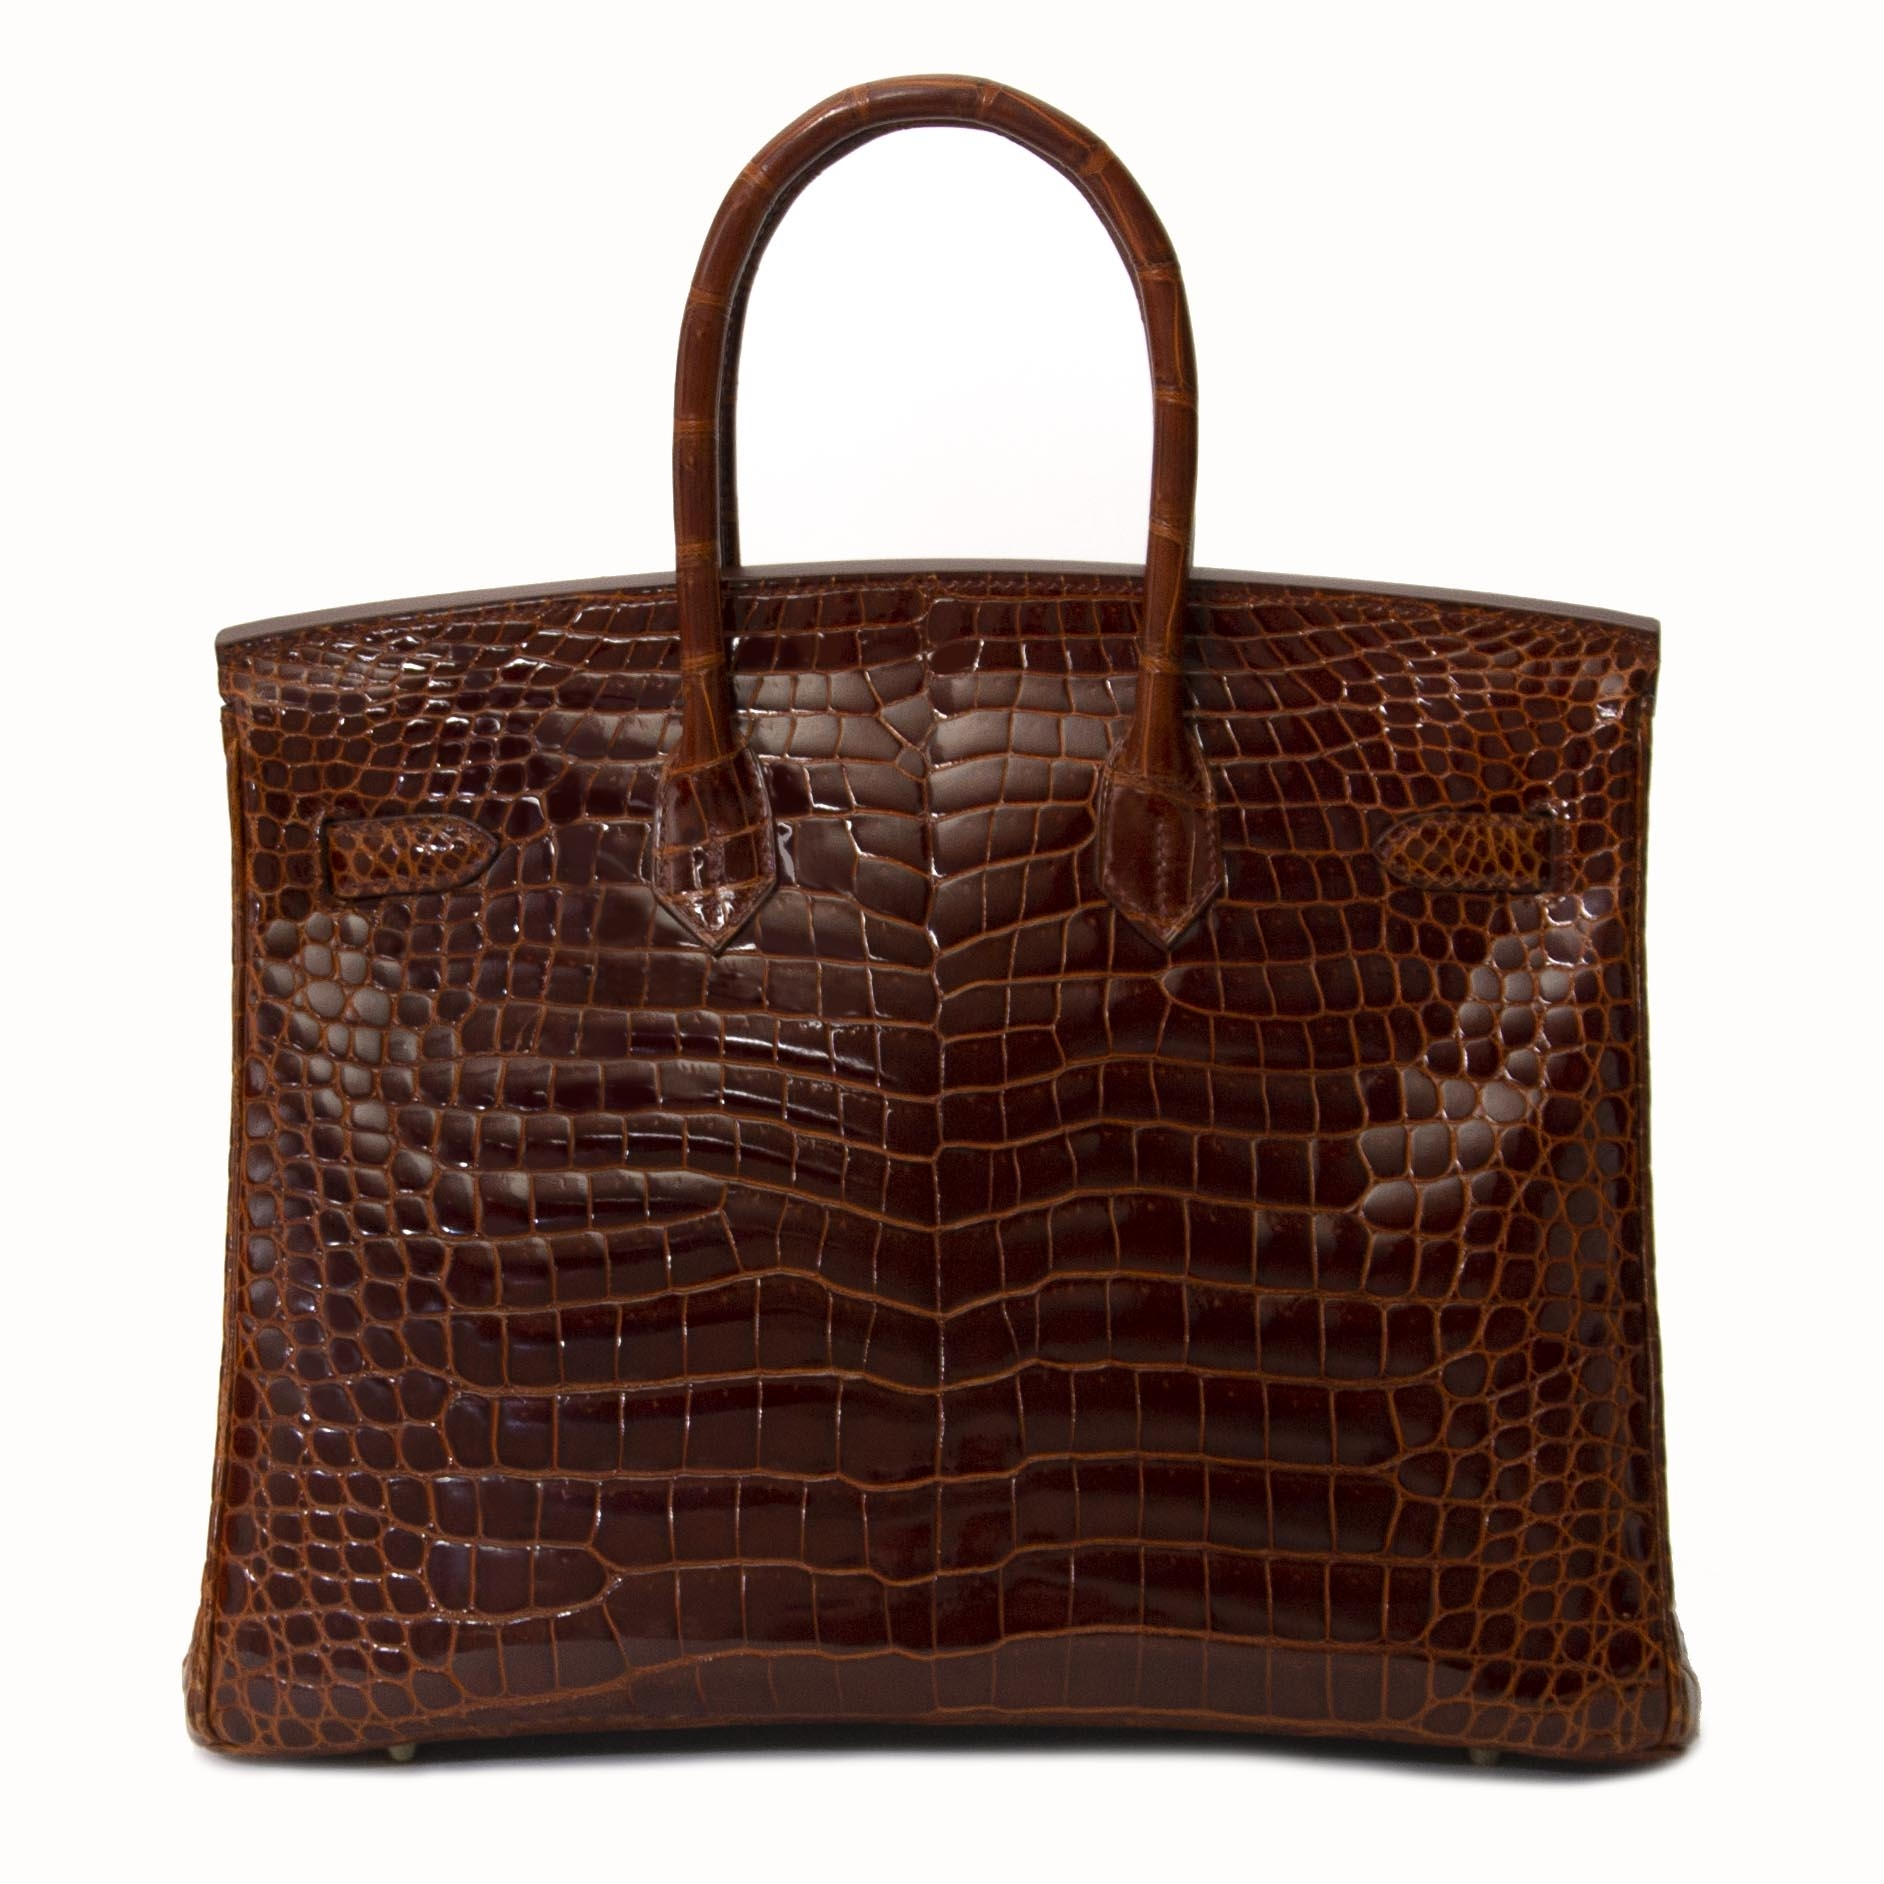 da100f9660 ... No waiting list shipping worldwide best price best value Hermès Birkin  35 Crocodile Porosus Havane GHW